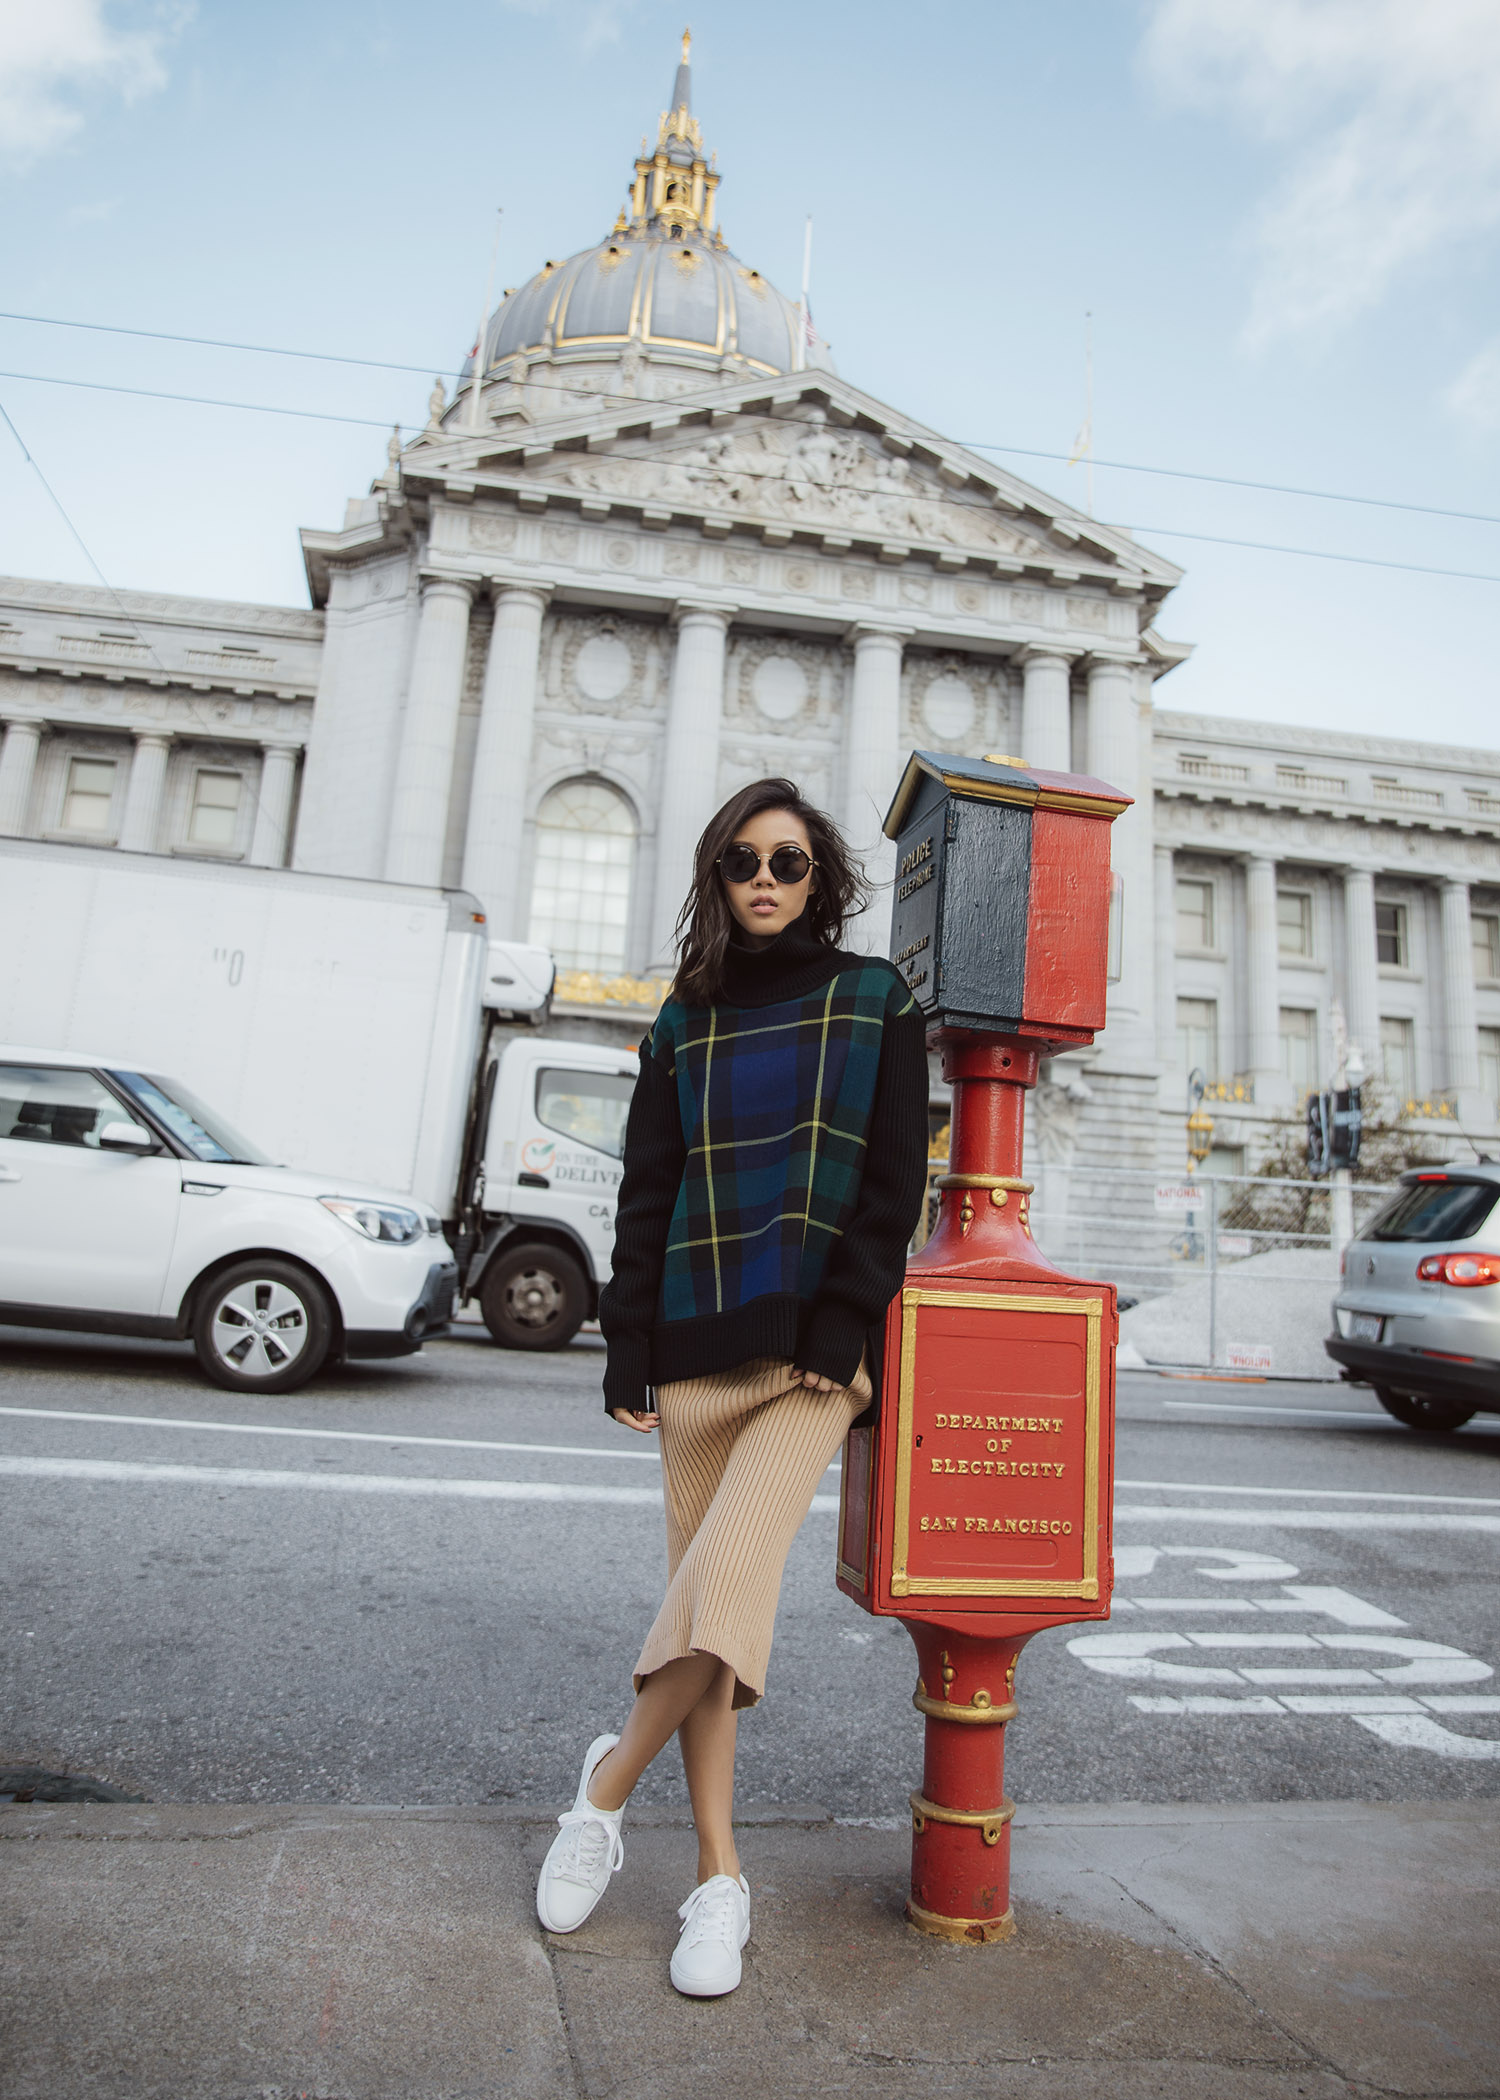 How to wear knit skirt - oversize sweater over knit skirt - Burberry tartan turtleneck bytsang knitted skirt in biscotti